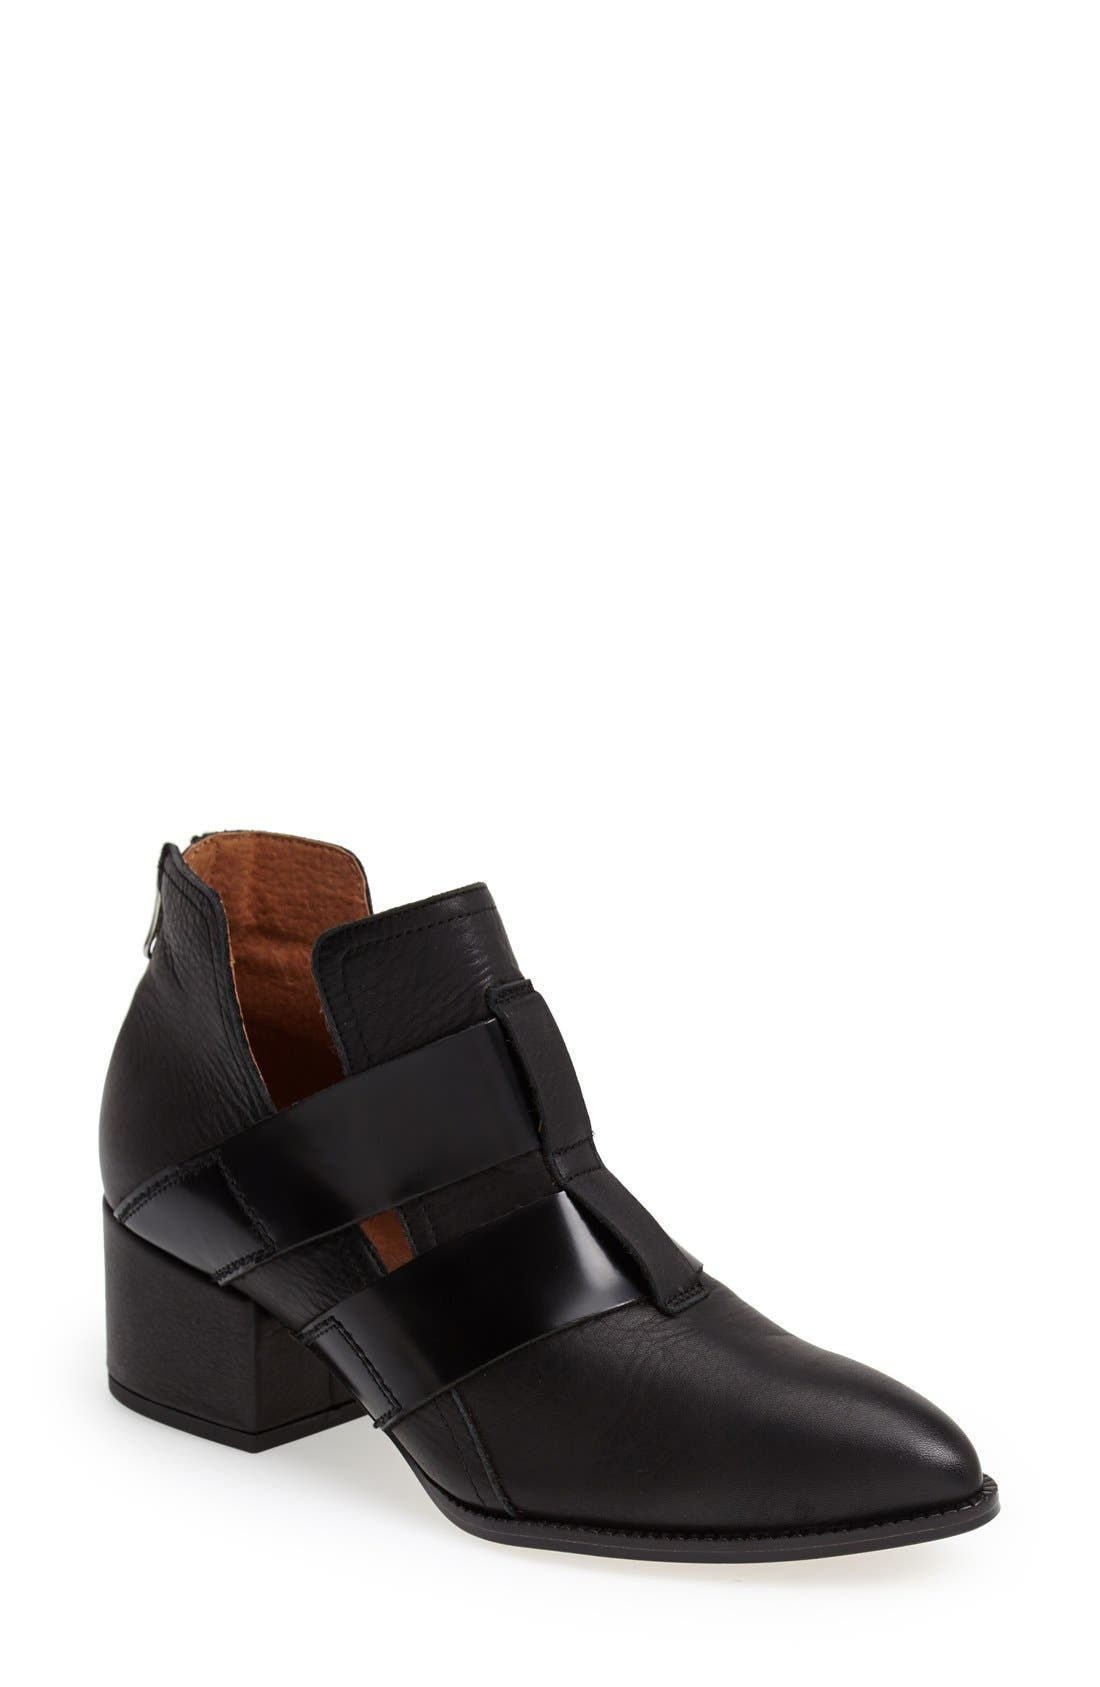 SIXTYSEVEN, 'Alice' Pointy Toe Leather Ankle Bootie, Main thumbnail 1, color, 001